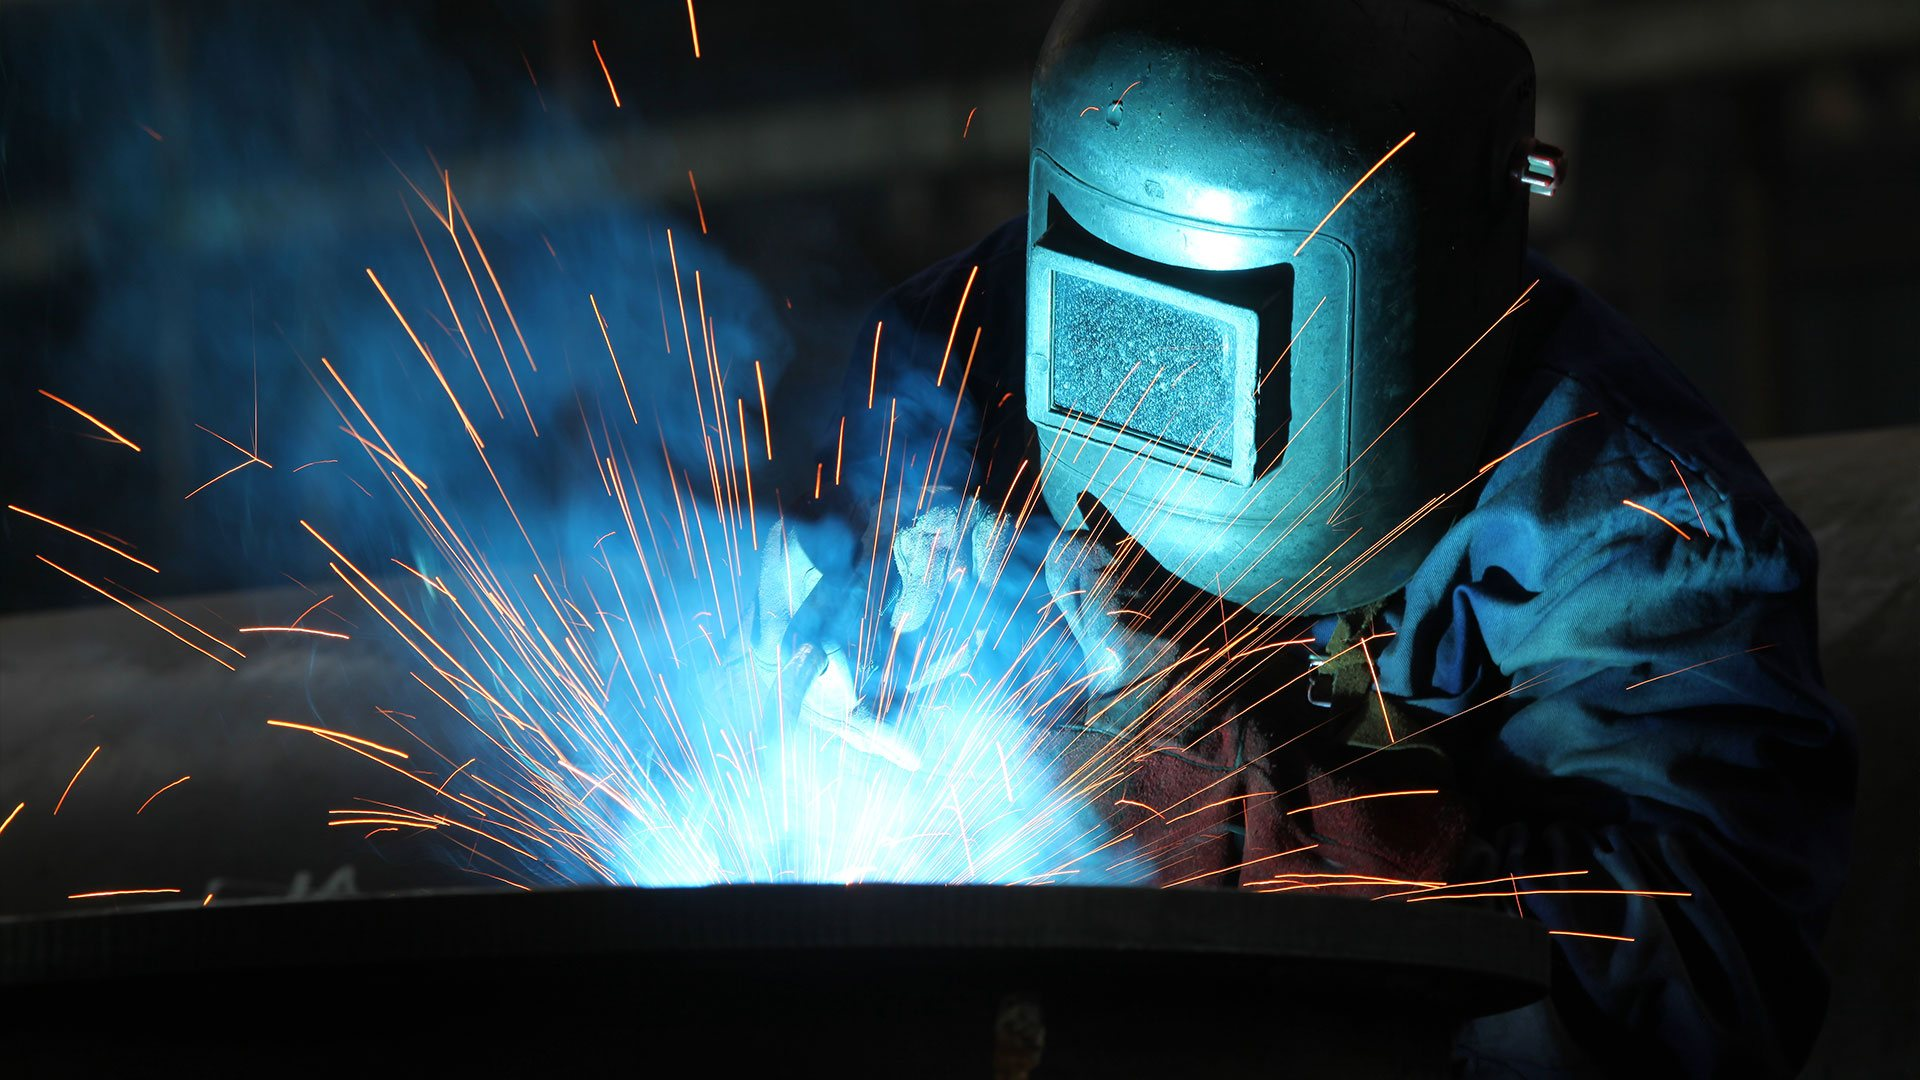 Wilkes-Barre Certified Welders, CNC Machining and Metal Fabrication